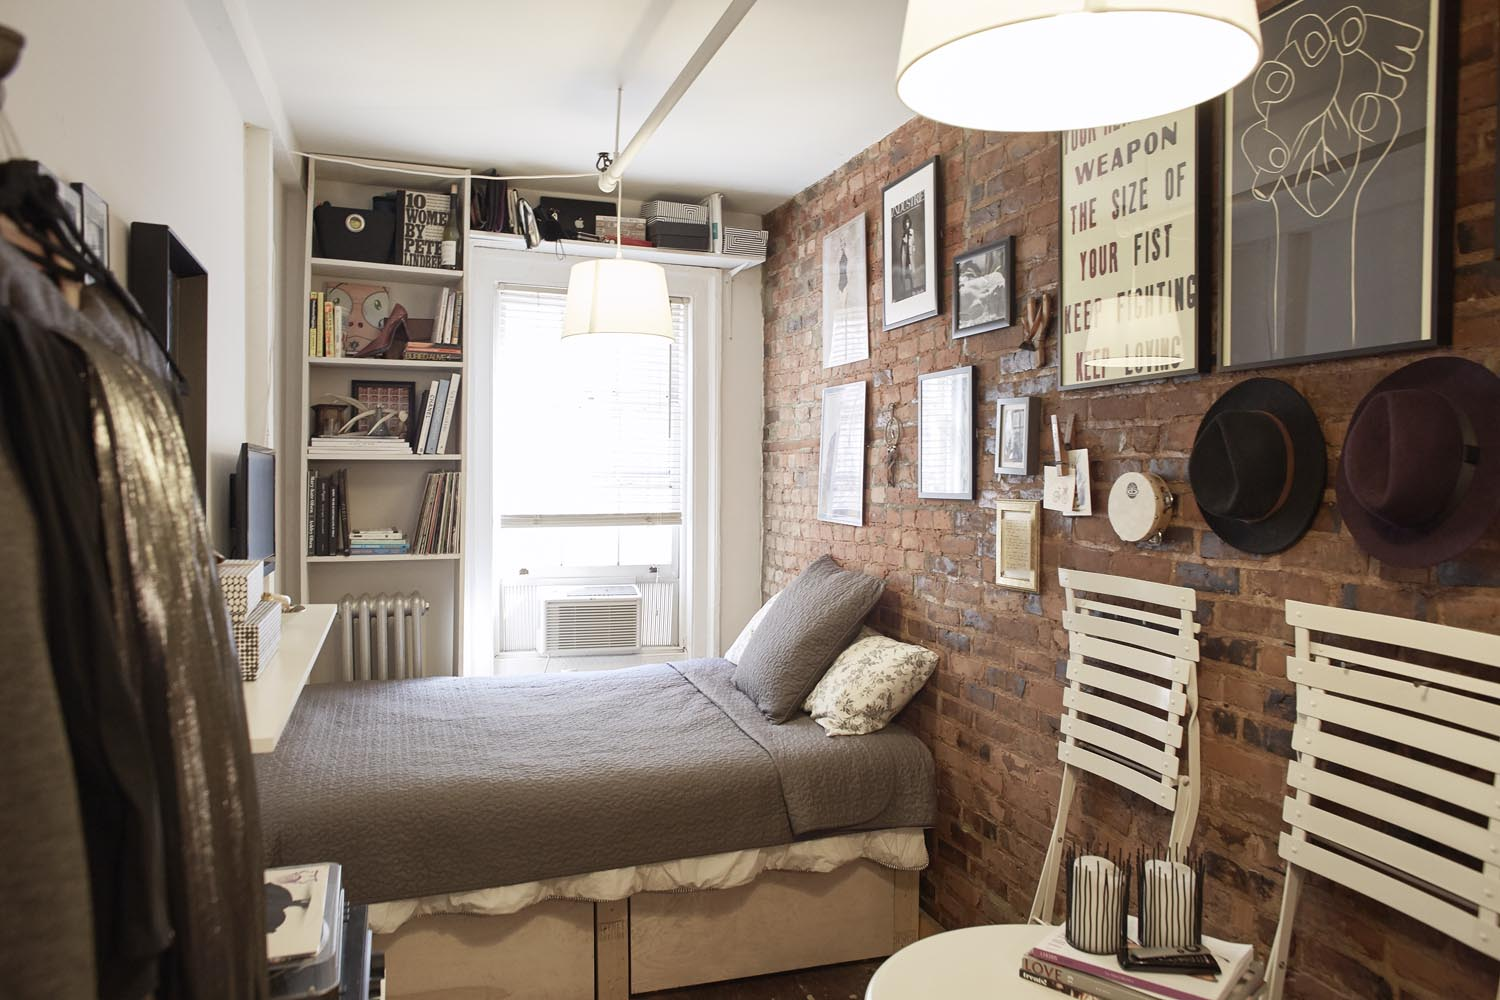 Interior of Mary Helen Rowell's 90 sq ft home in Manhattan's West Village